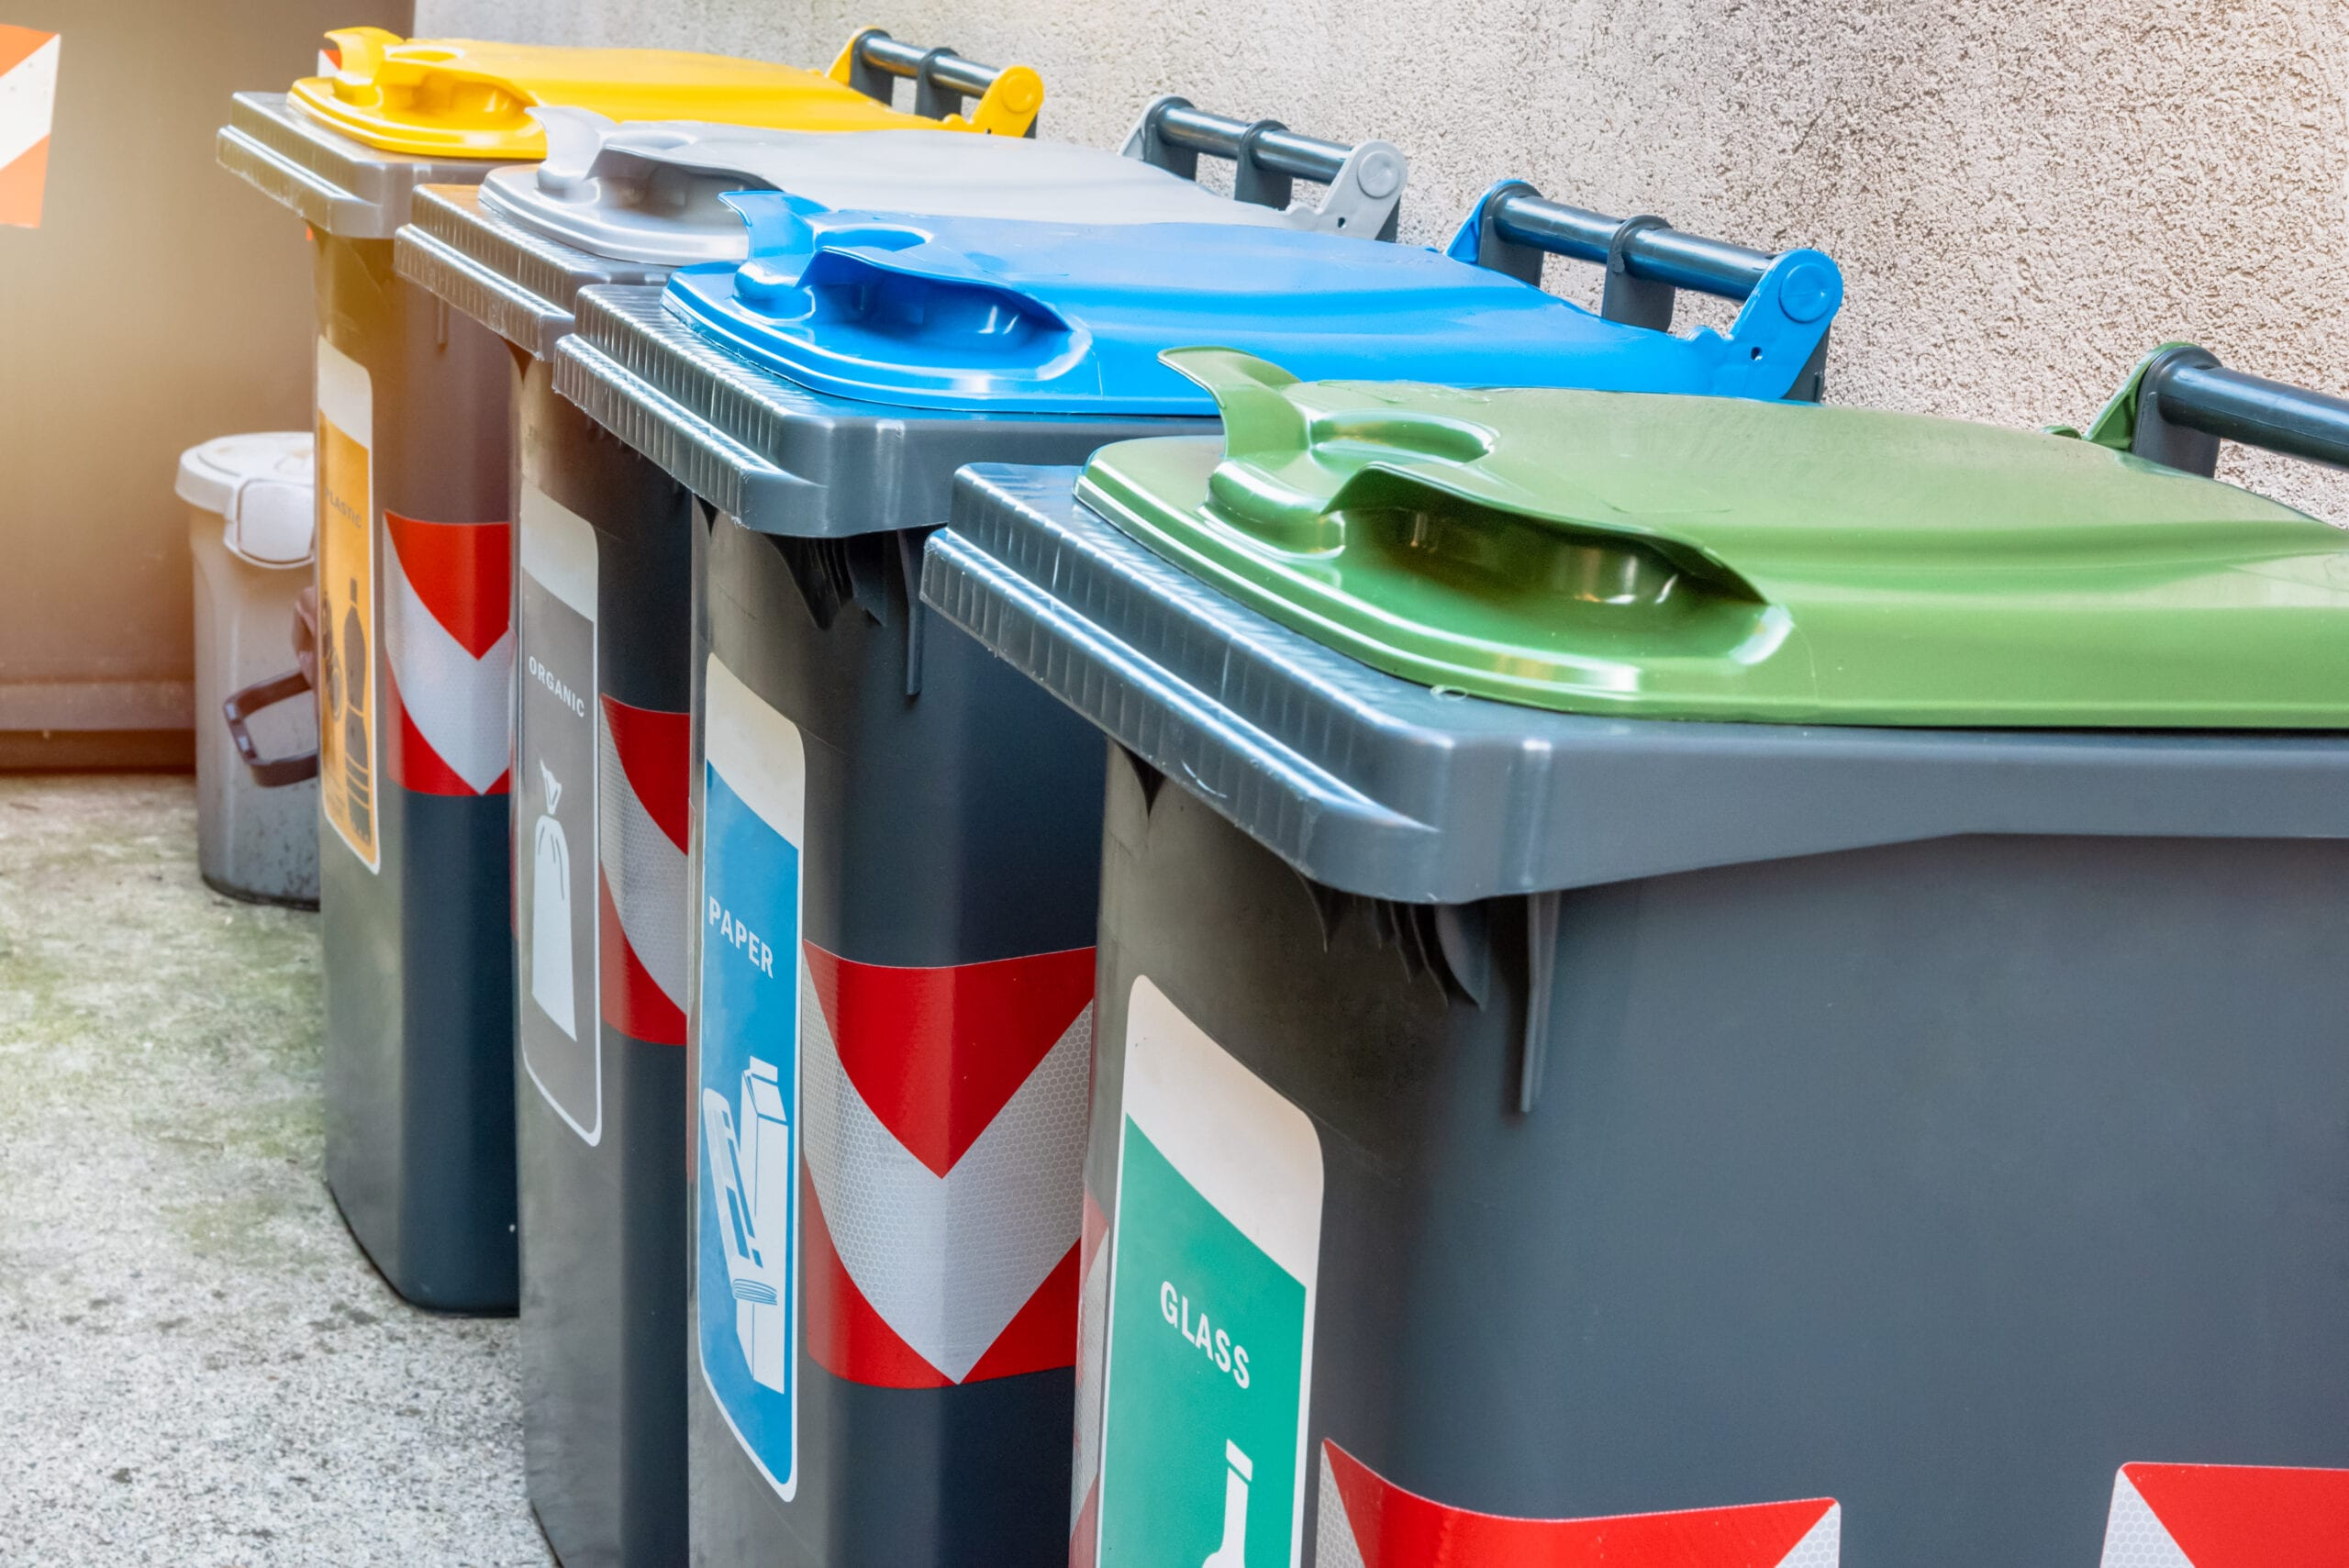 Recycling bins on the paved back yard of a house